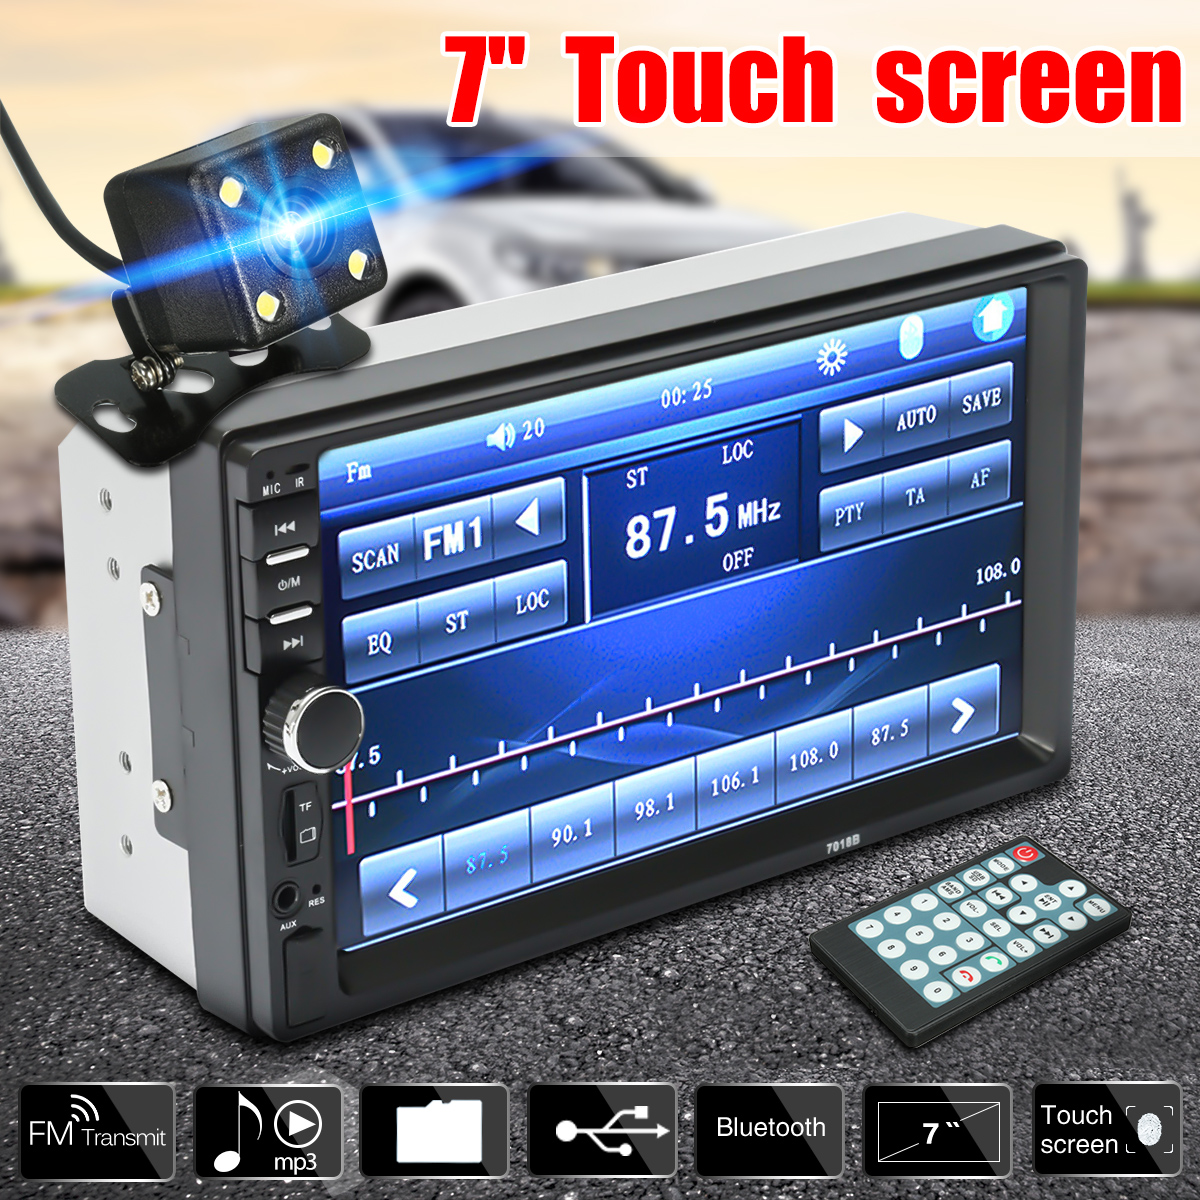 7 HD Bluetooth Touch Screen 2 Din Car Stereo Radio FM AUX USB SD MP5 Player + Rear View Camera + Remote Controller